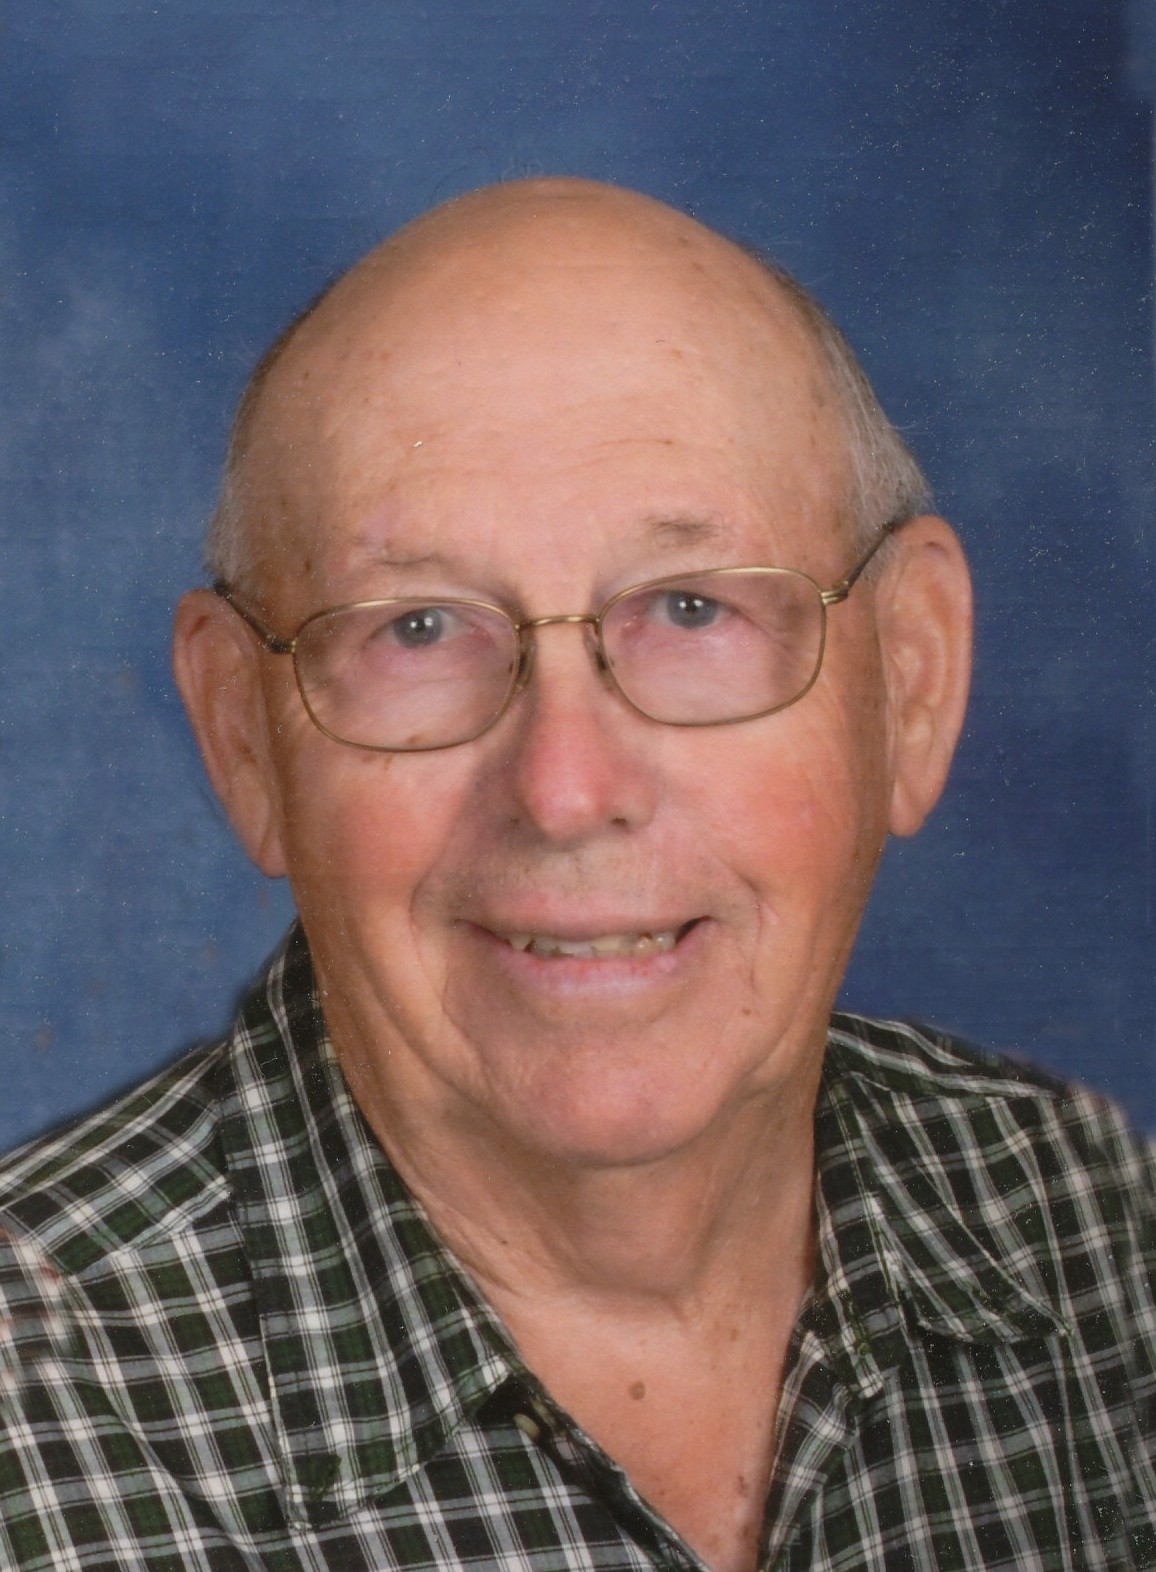 Harris D. Heinemann, age 84, of rural Wayne, Nebraska